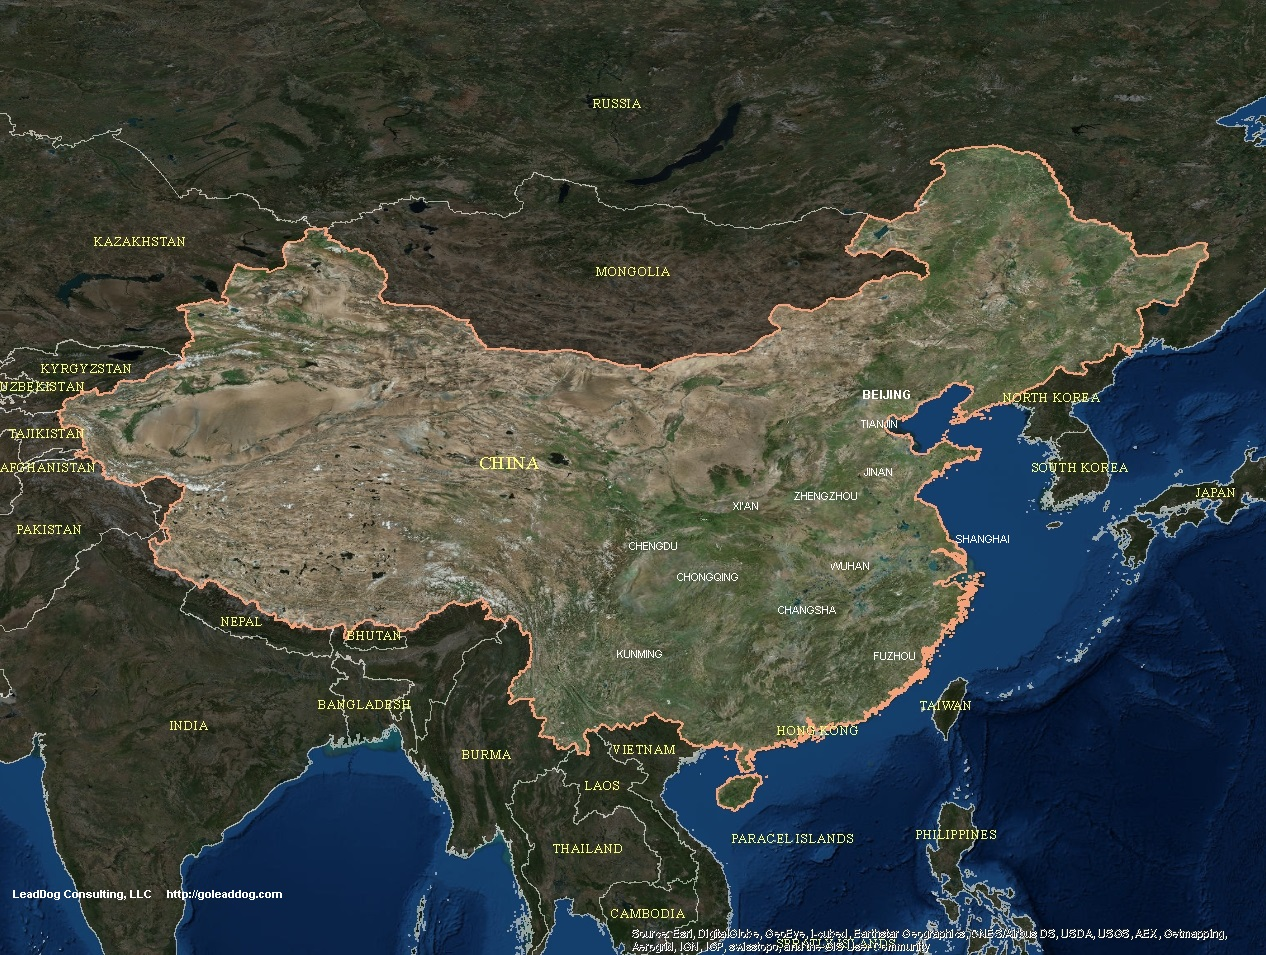 China Satellite Maps LeadDog Consulting